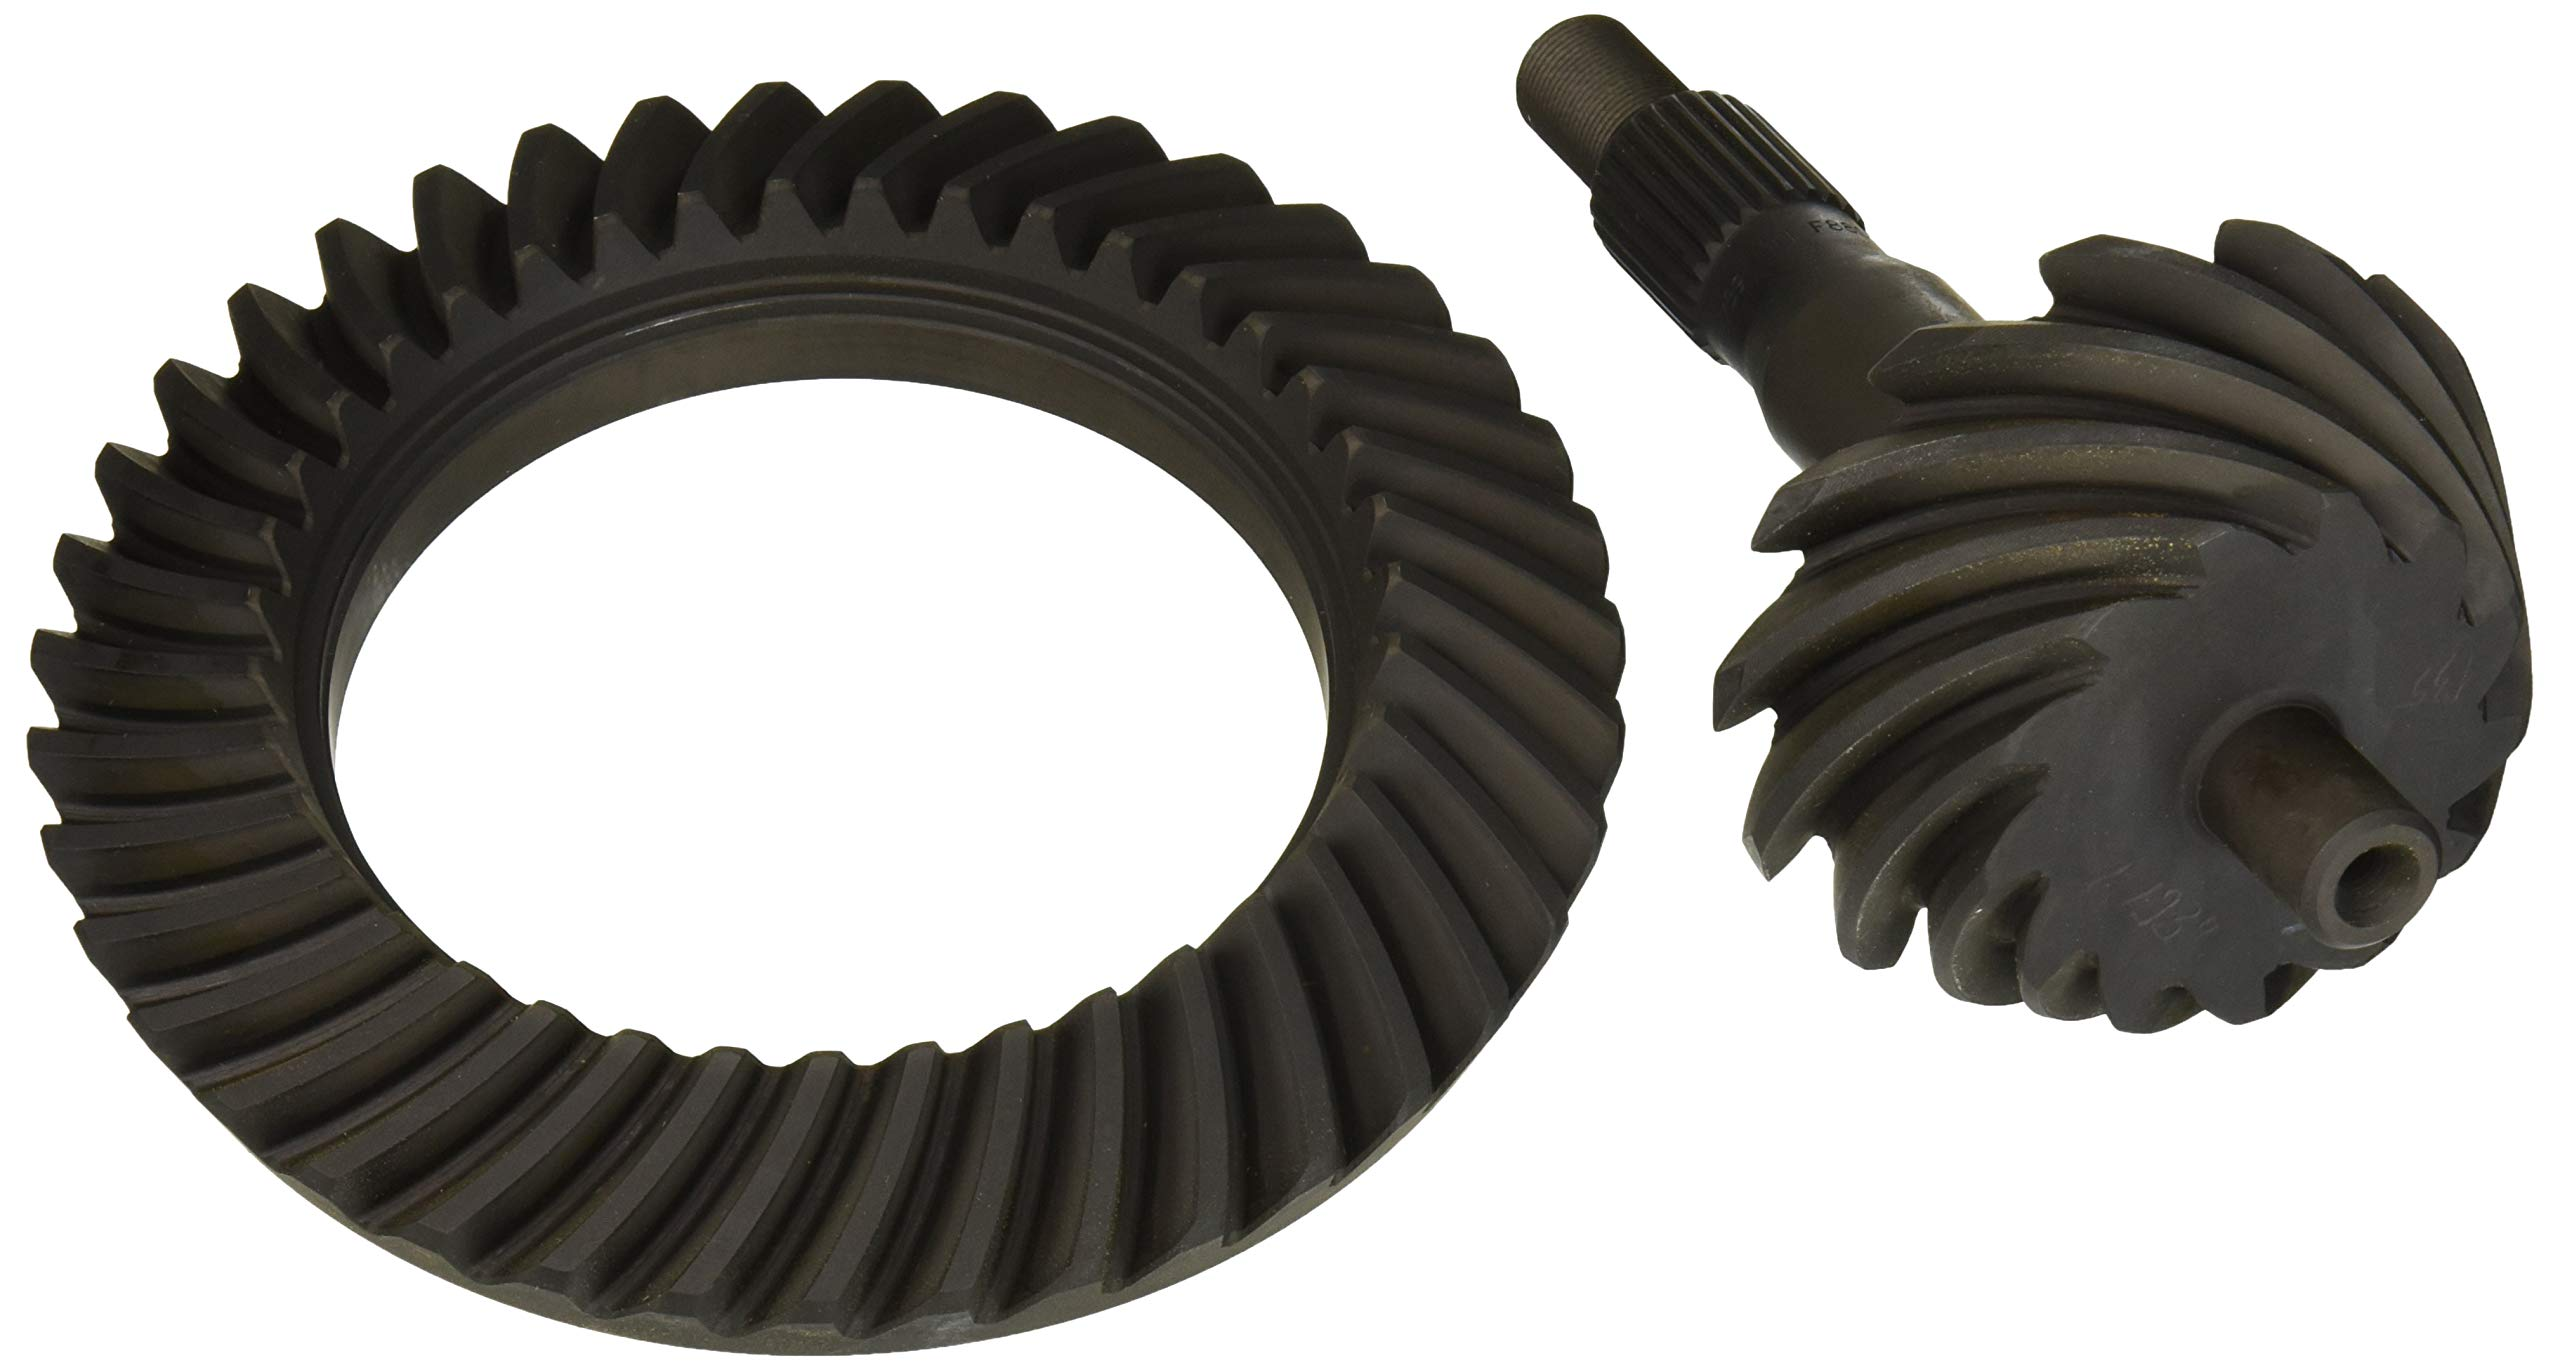 Motive Gear F880300 Rear Ring and Pinion for Ford (3.00 Ratio, 8 Dropout) by Motive Gear